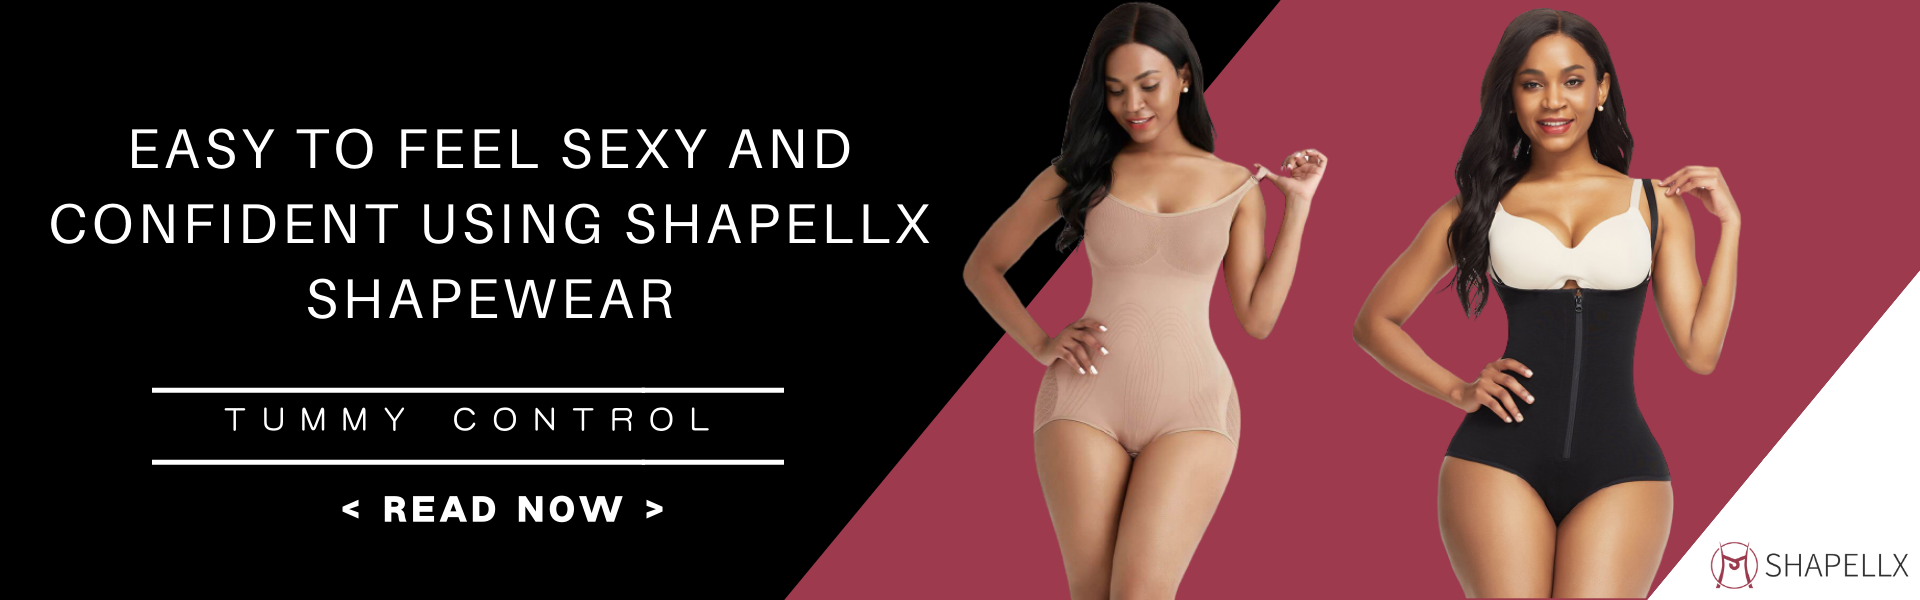 Easy To Feel Sexy And Confident Wearing Shapellx